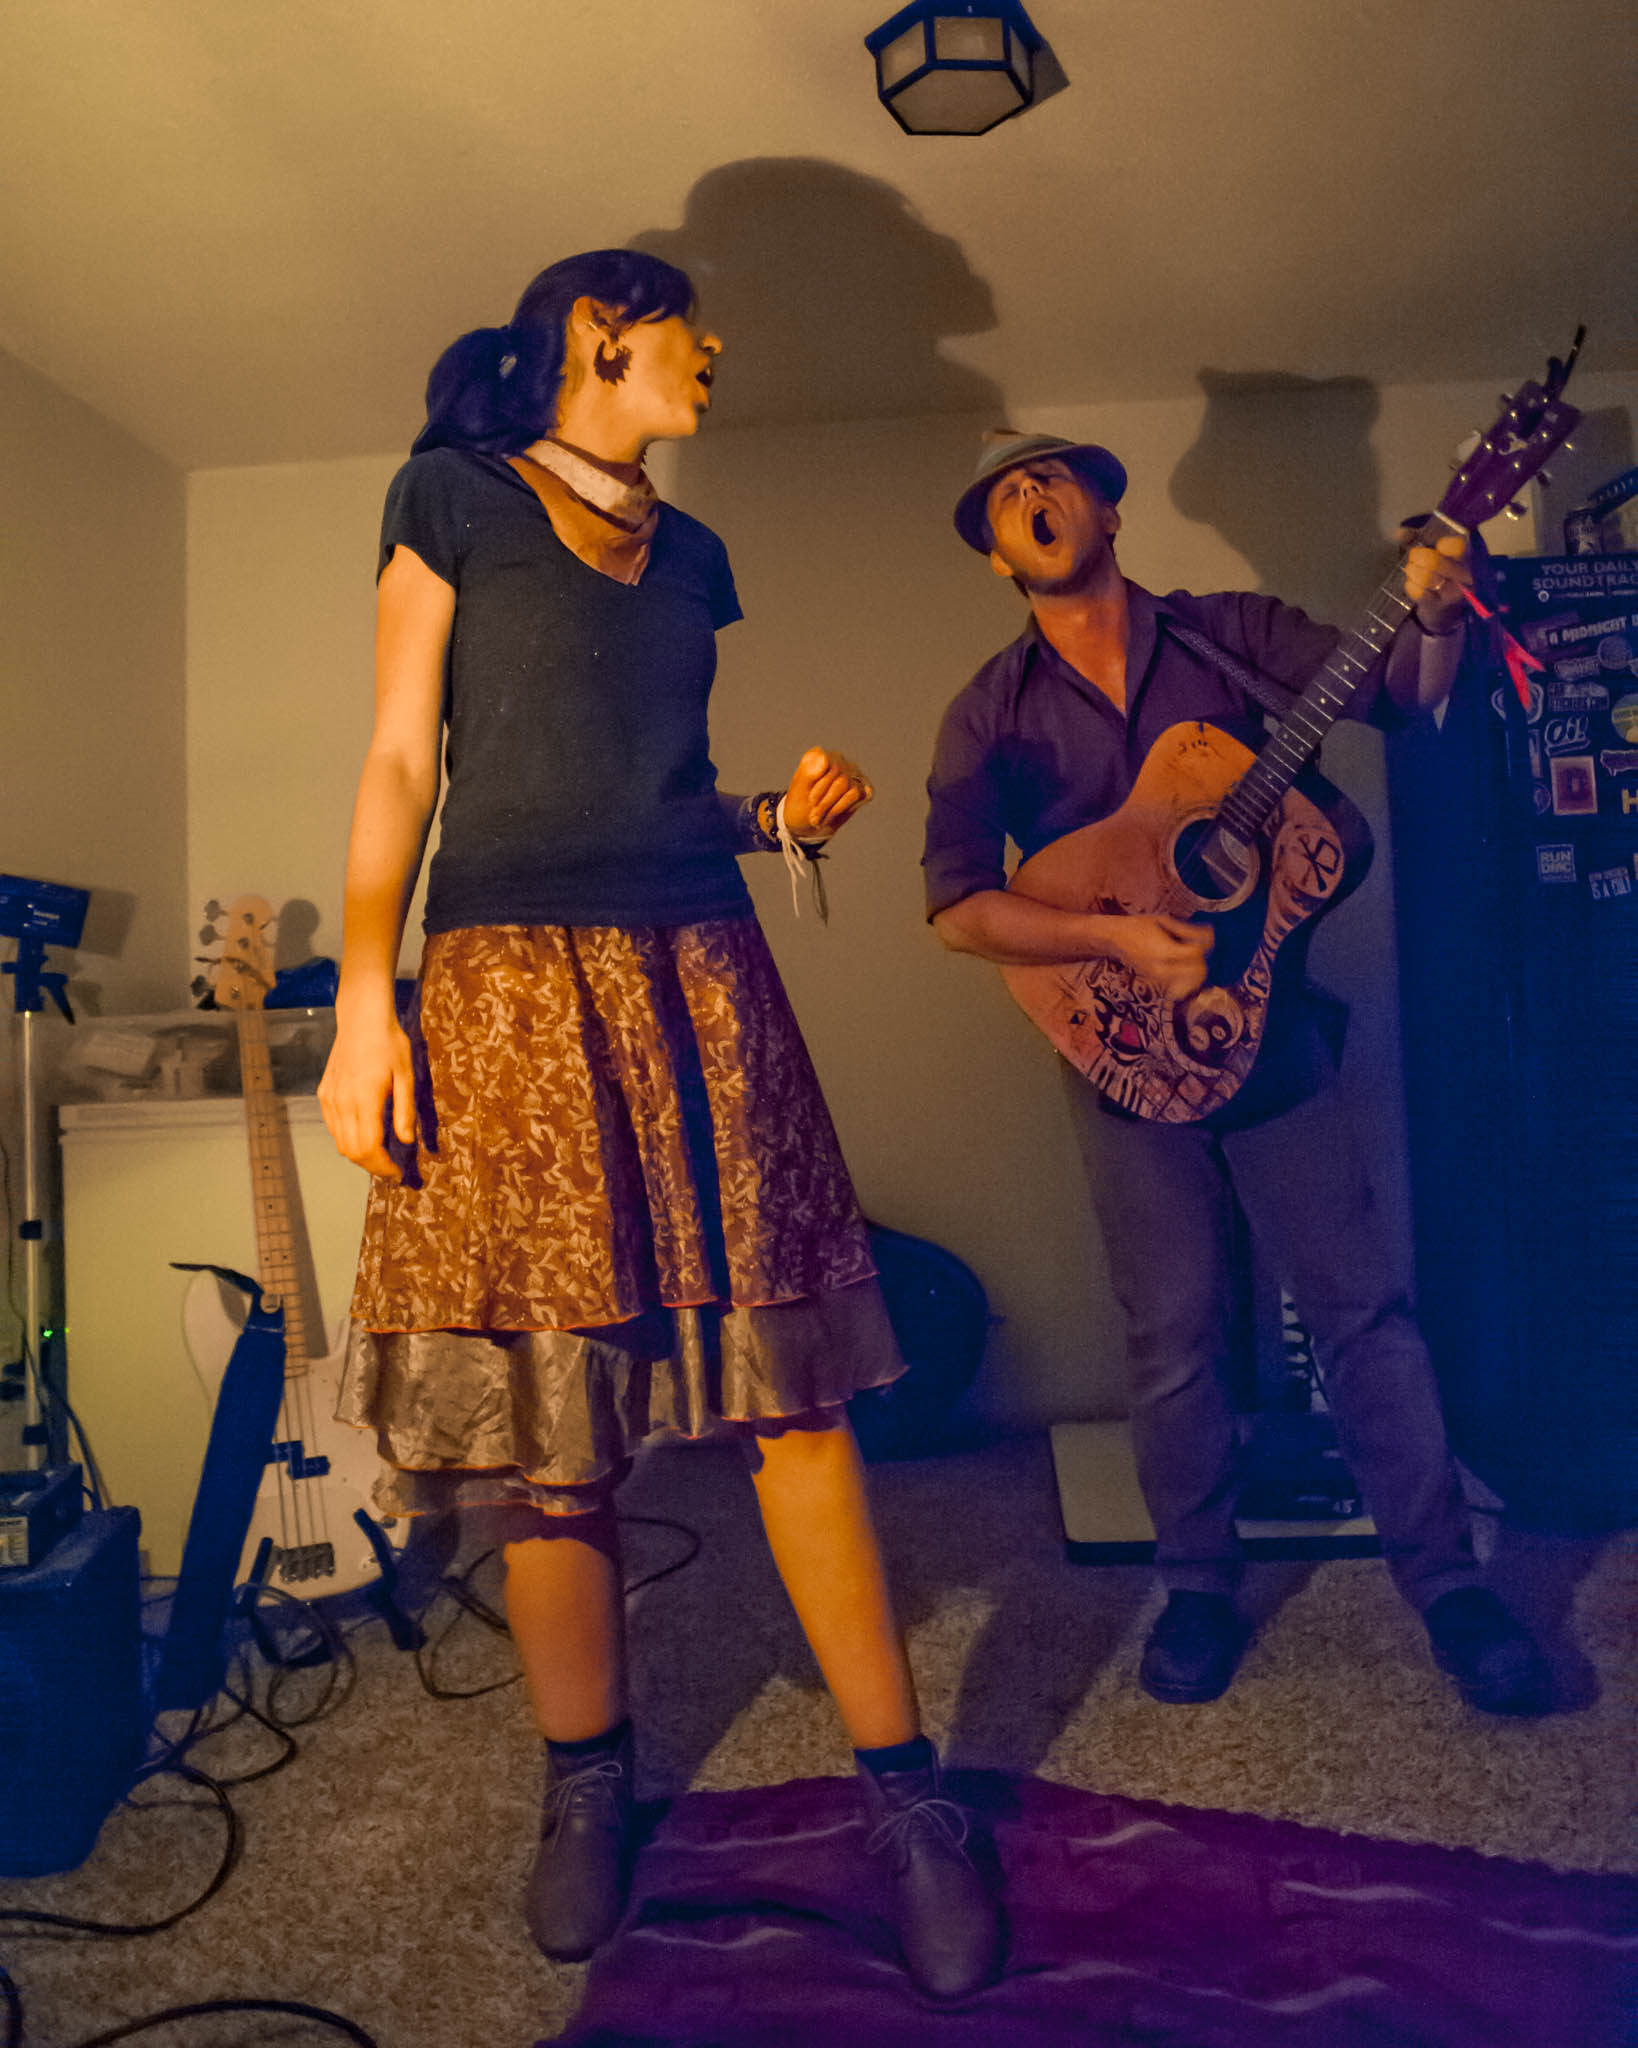 Insomniac Folklore playing at our house show in Cedar Rapids, Iowa